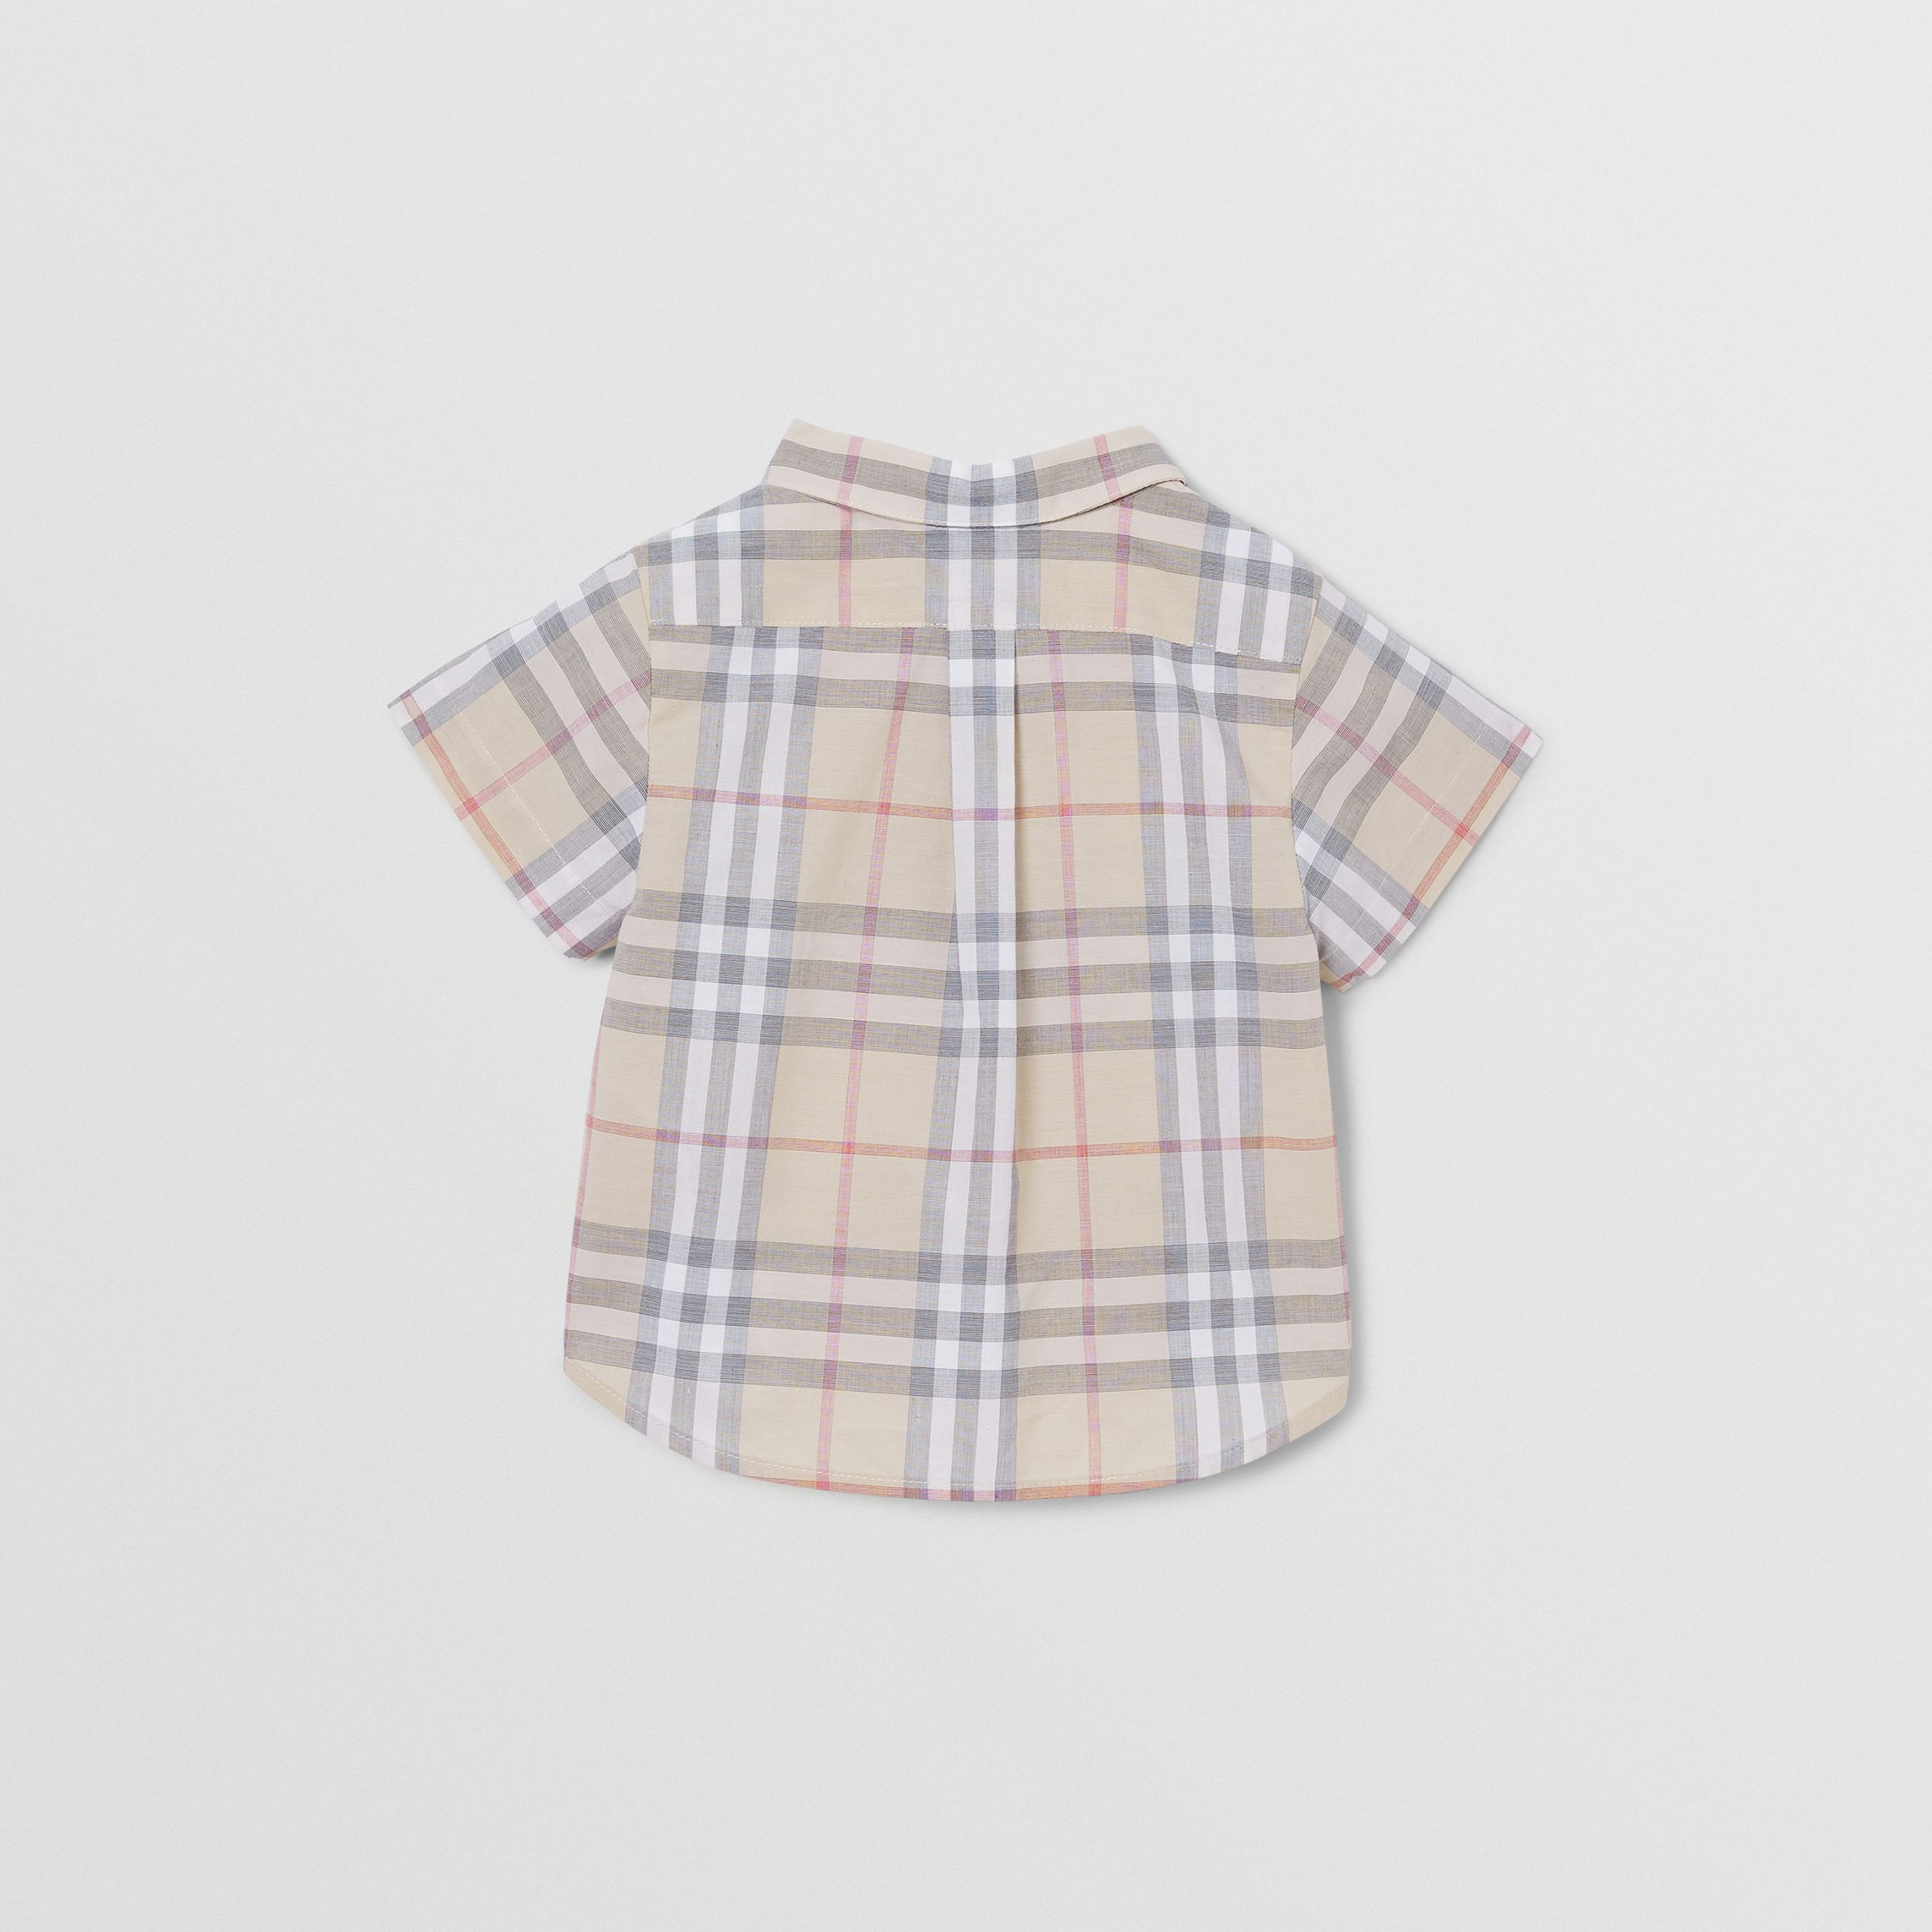 Button-down Collar Short-sleeve Check Cotton Shirt in Pale Stone - Children | Burberry United States - 4